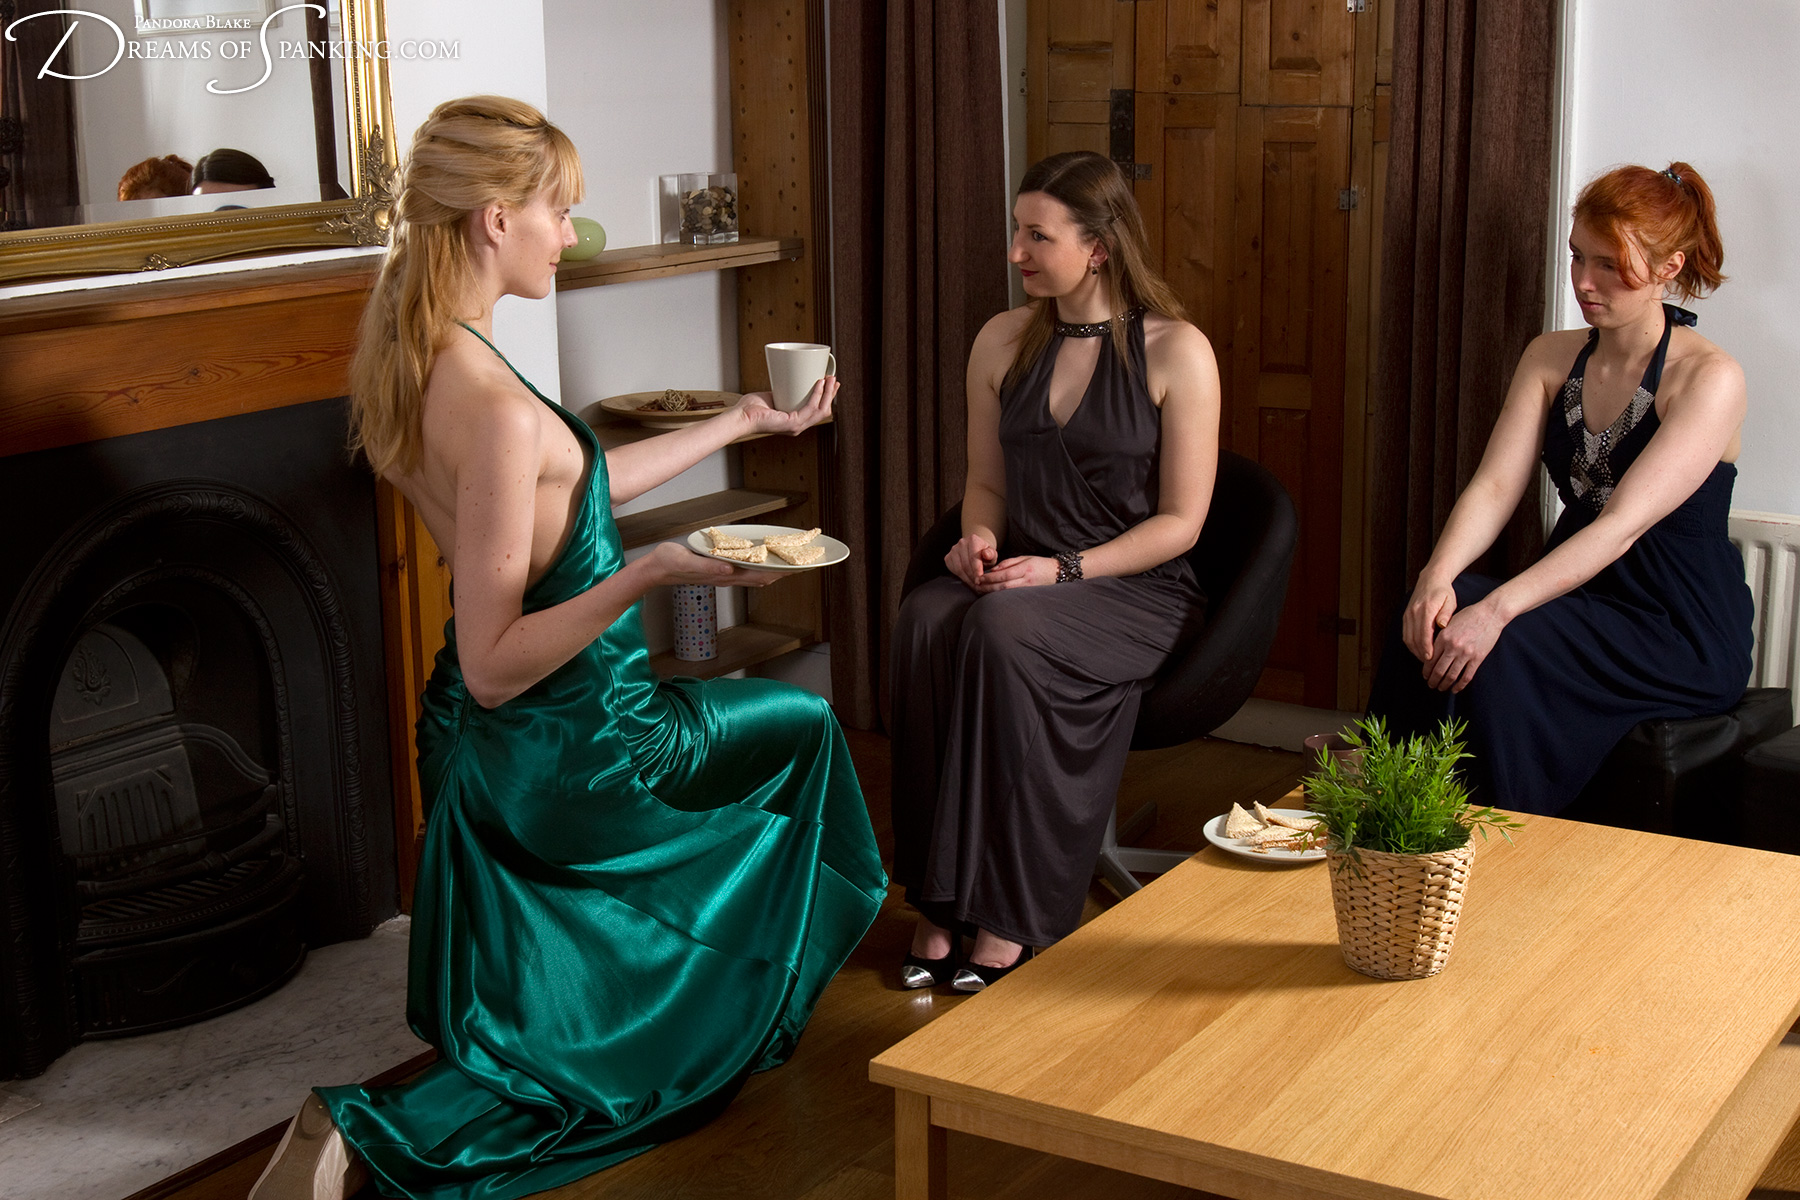 Amelia Jane Rutherford models perfect submissive obedience for Pandora Blake and Caroline Grey